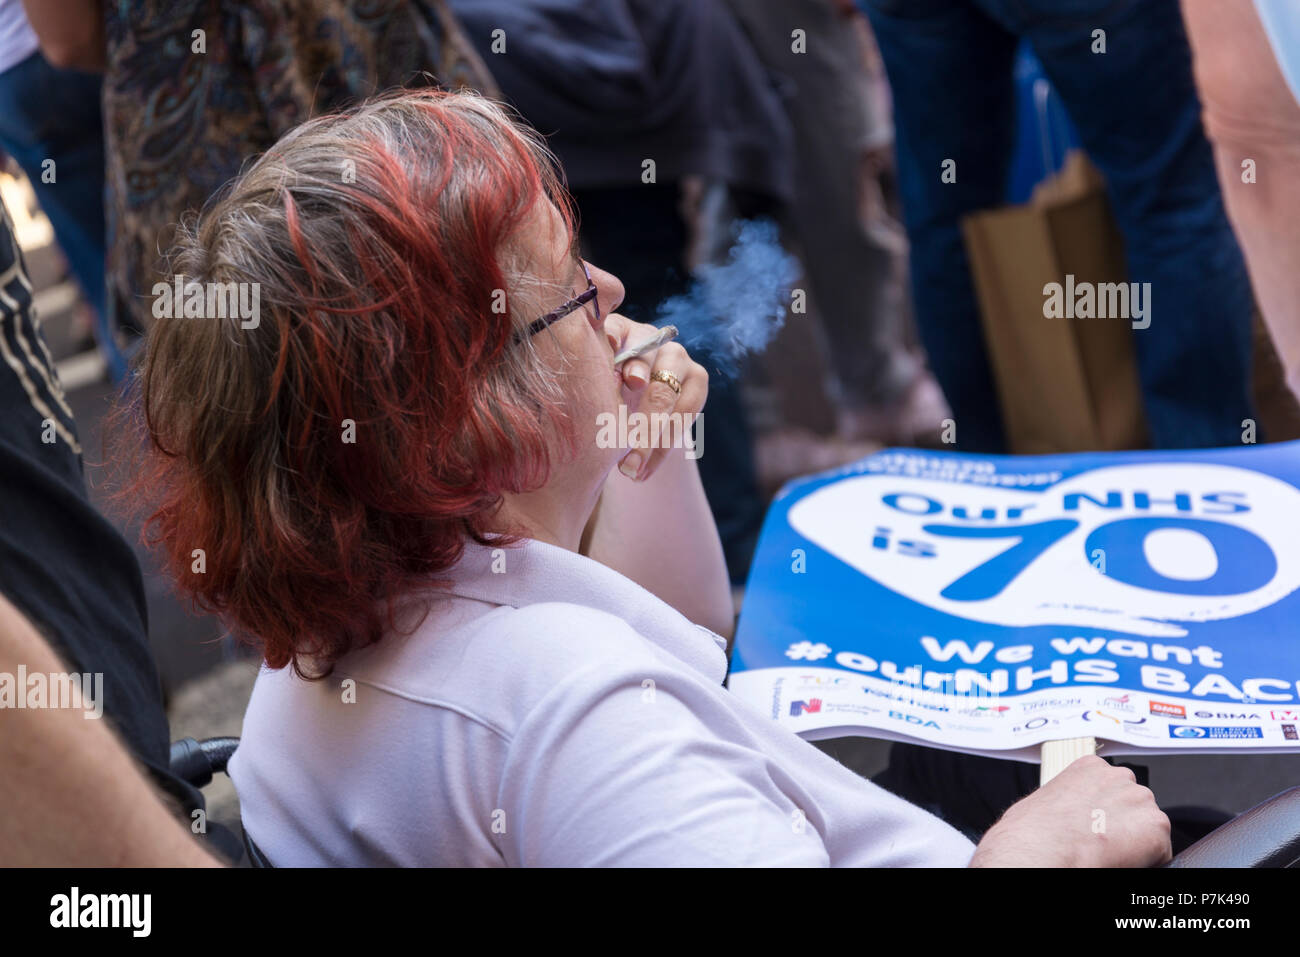 NHS 70th Anniversary March organised by People's Assembly, Woman holding a placard and smoking, London, UK, 30/06/2018 - Stock Image